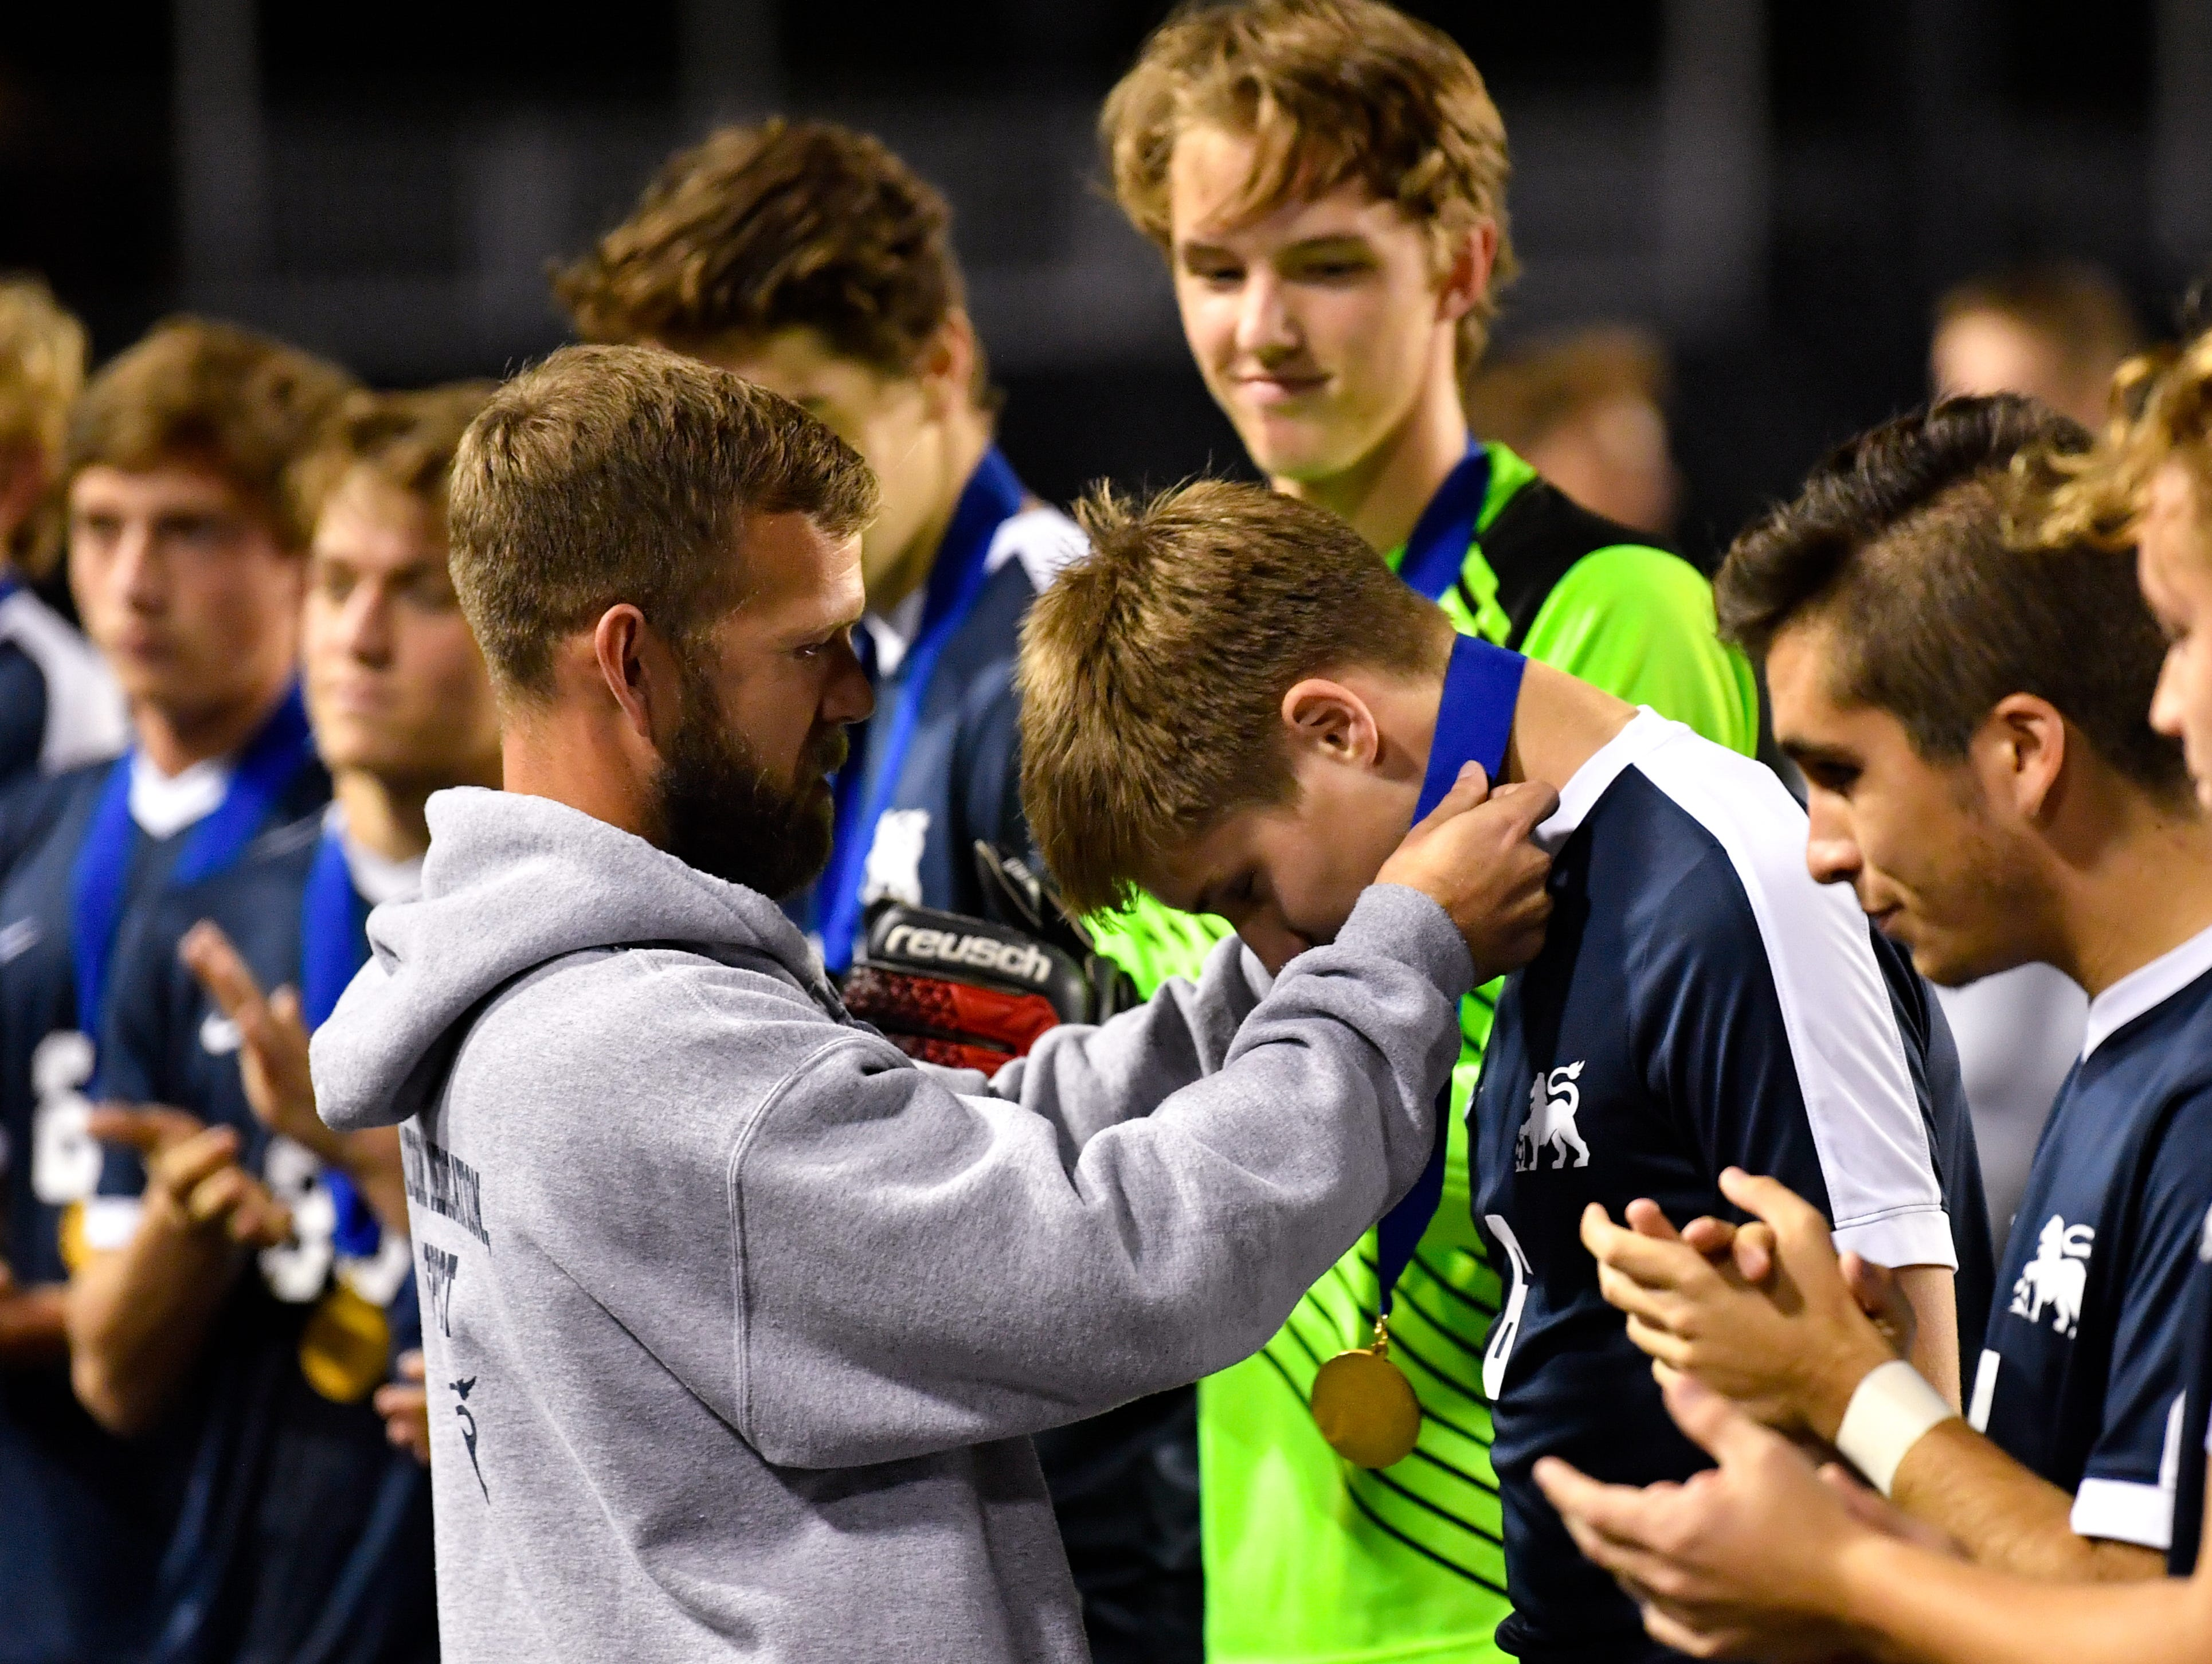 Camp Hill coach Justin Sheaffer gives each player a first place medal after the District 3 Class 1A boys' soccer finals between York Catholic and Camp Hill at Hersheypark Stadium, October 31, 2018. The Lions beat the Fighting Irish 2-0.